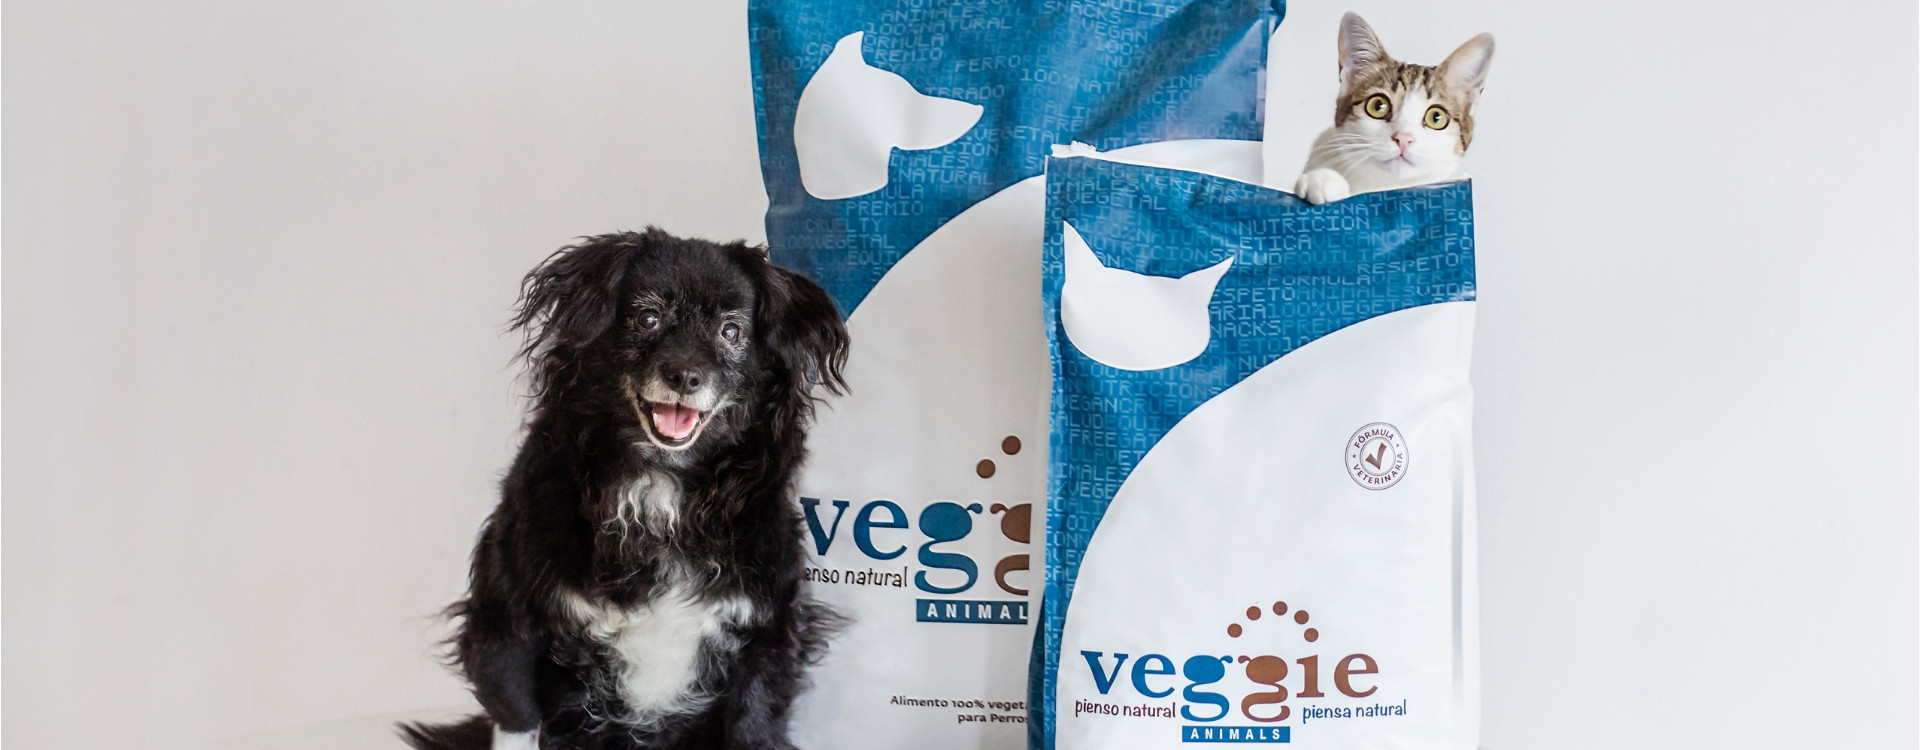 10 reasons to feed VeggieAnimals to your dog and cat: